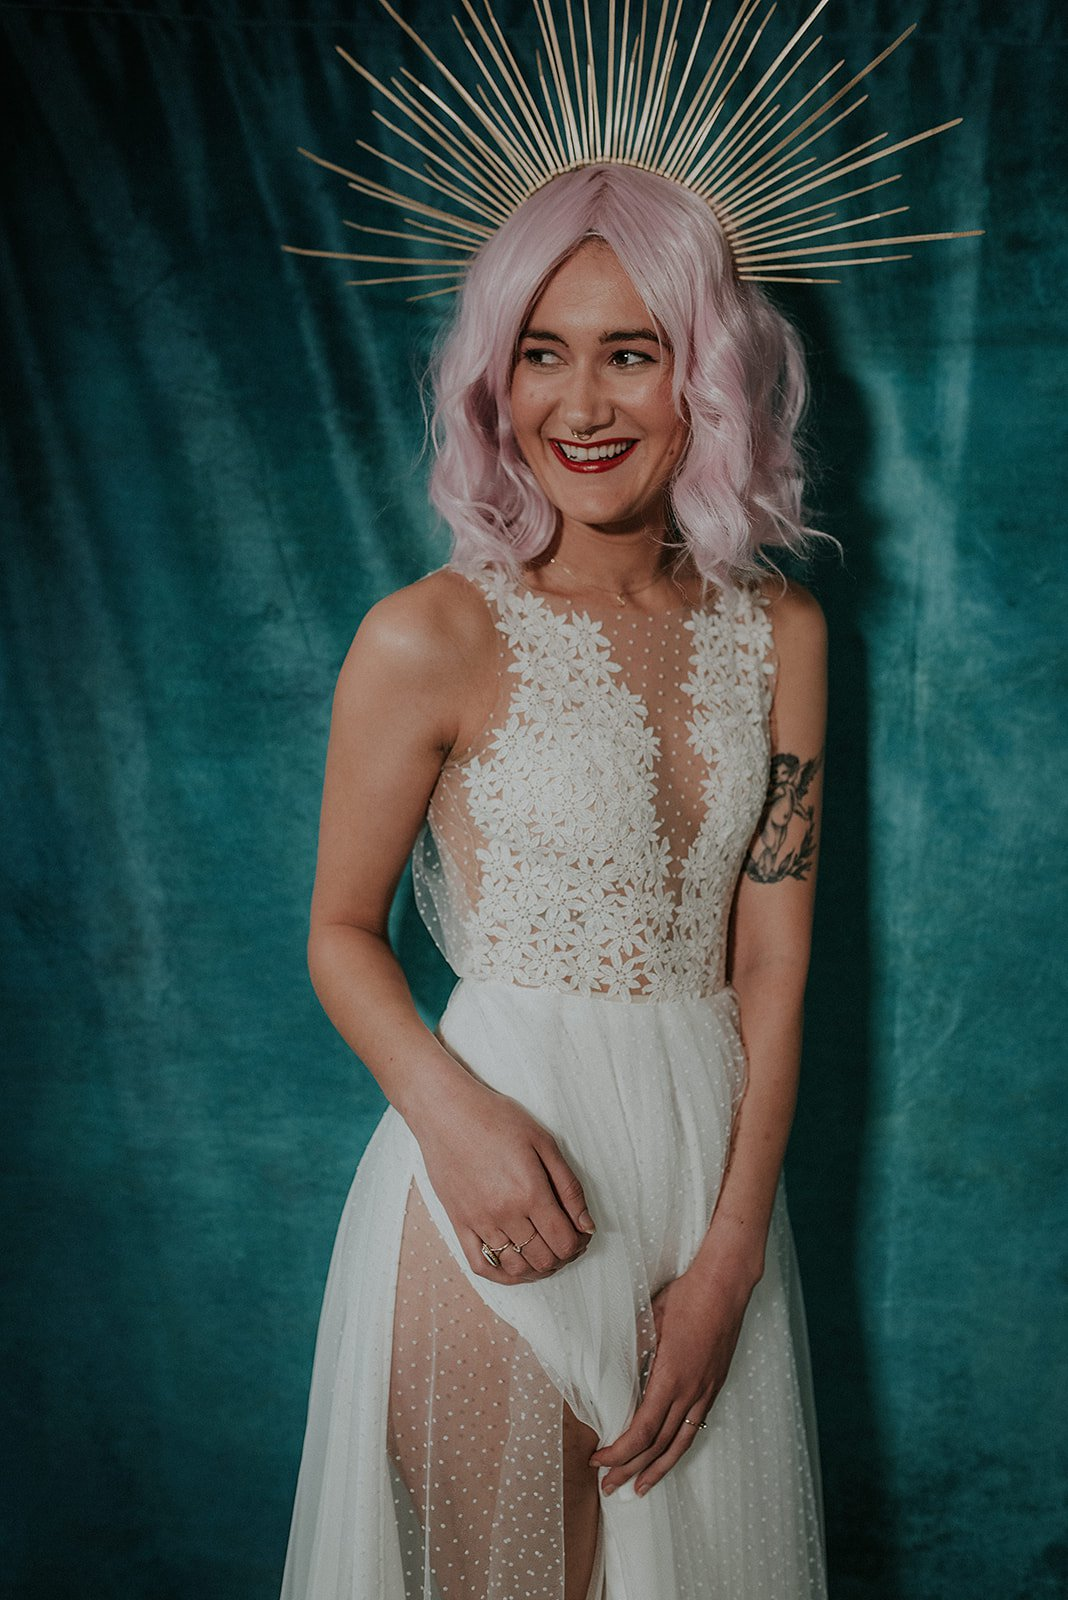 Lucy Cant Dance Cosmic Rodeo Alternative wedding dresses separates Megan Elle Photography 00014.jpg